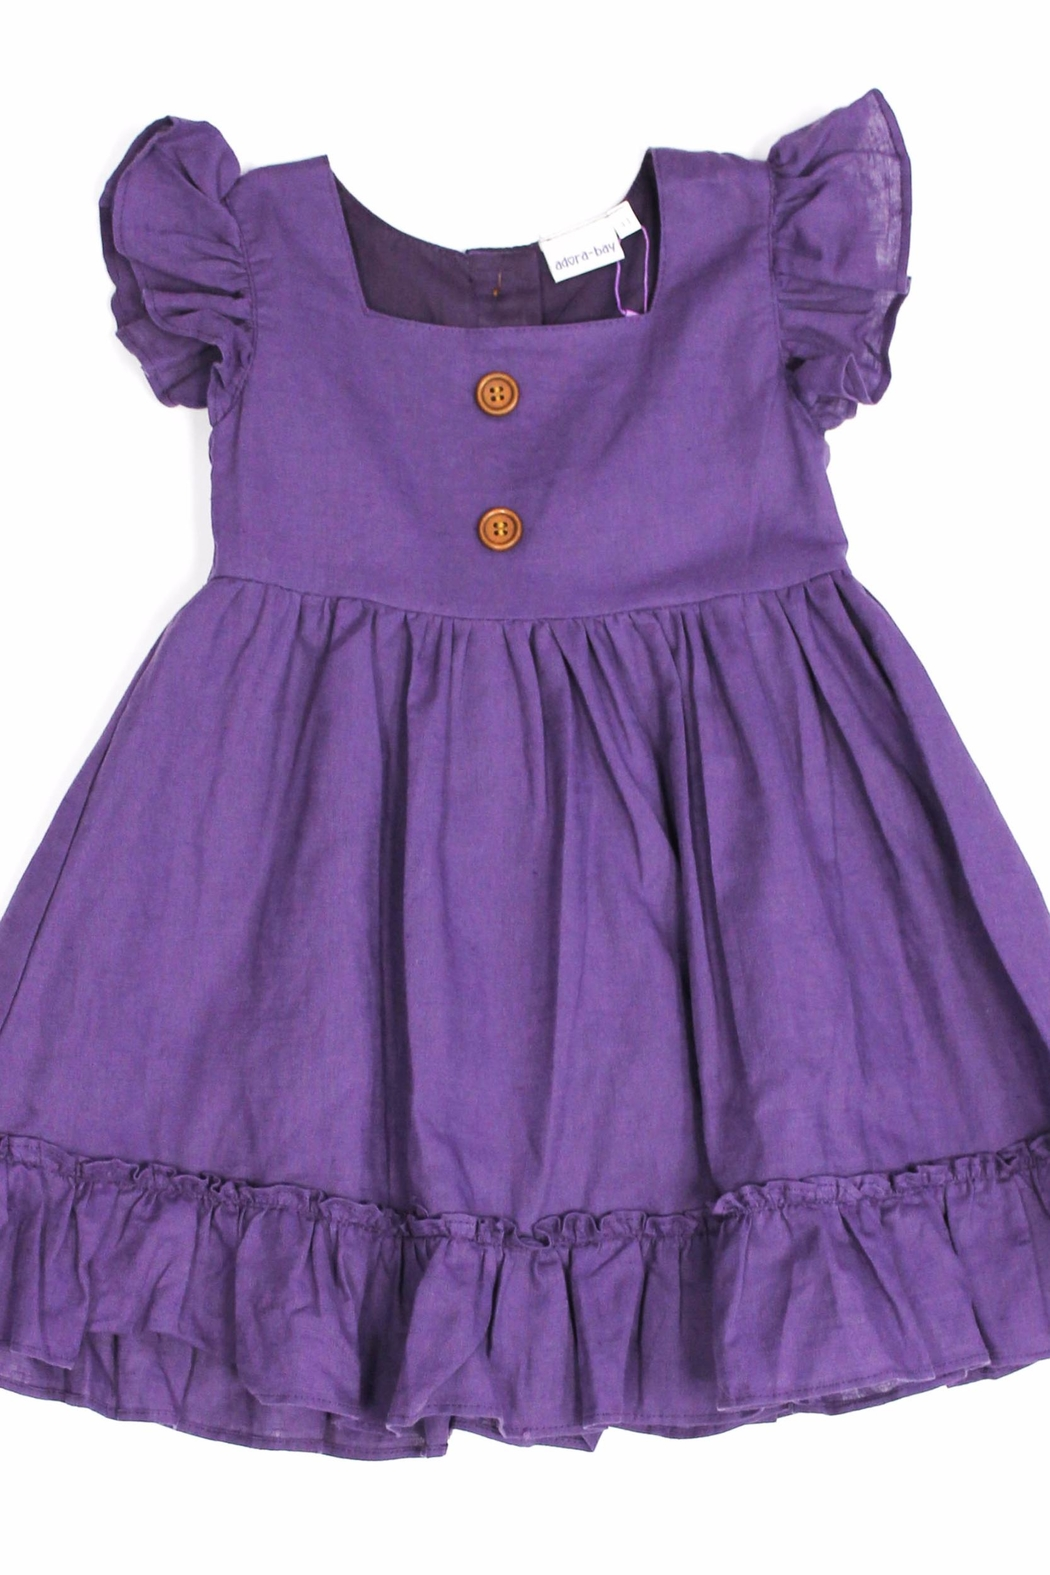 Adora-bay Purple Button Dress - Front Cropped Image